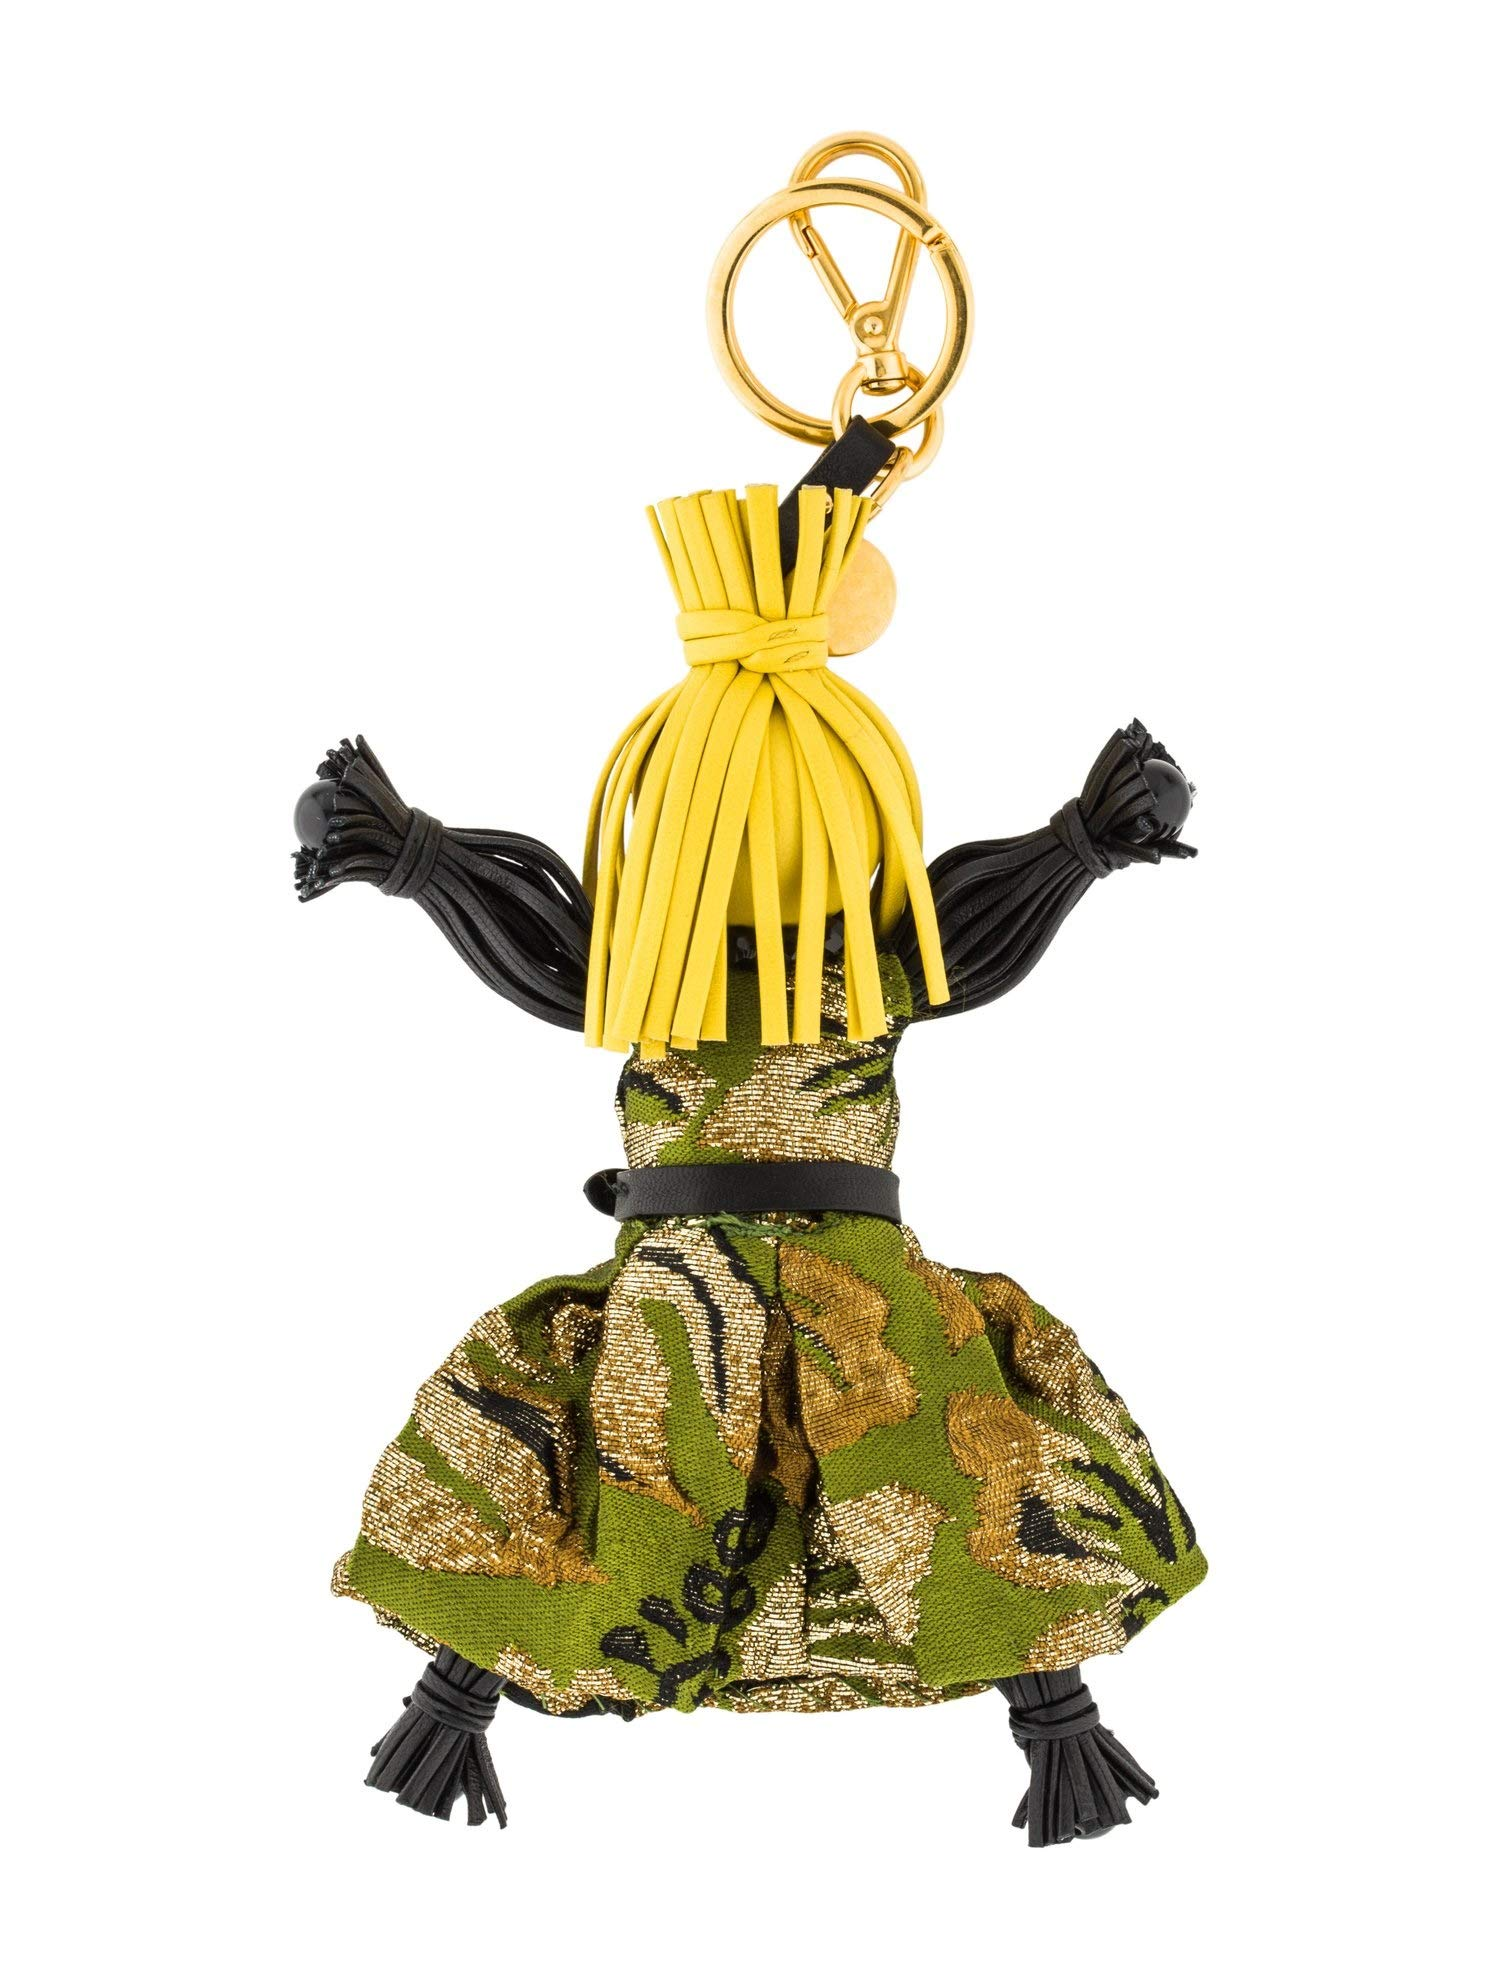 Prada Trick Pelle Felce Green Dress Jasmine Doll Keyring 1TL171 by Prada (Image #5)